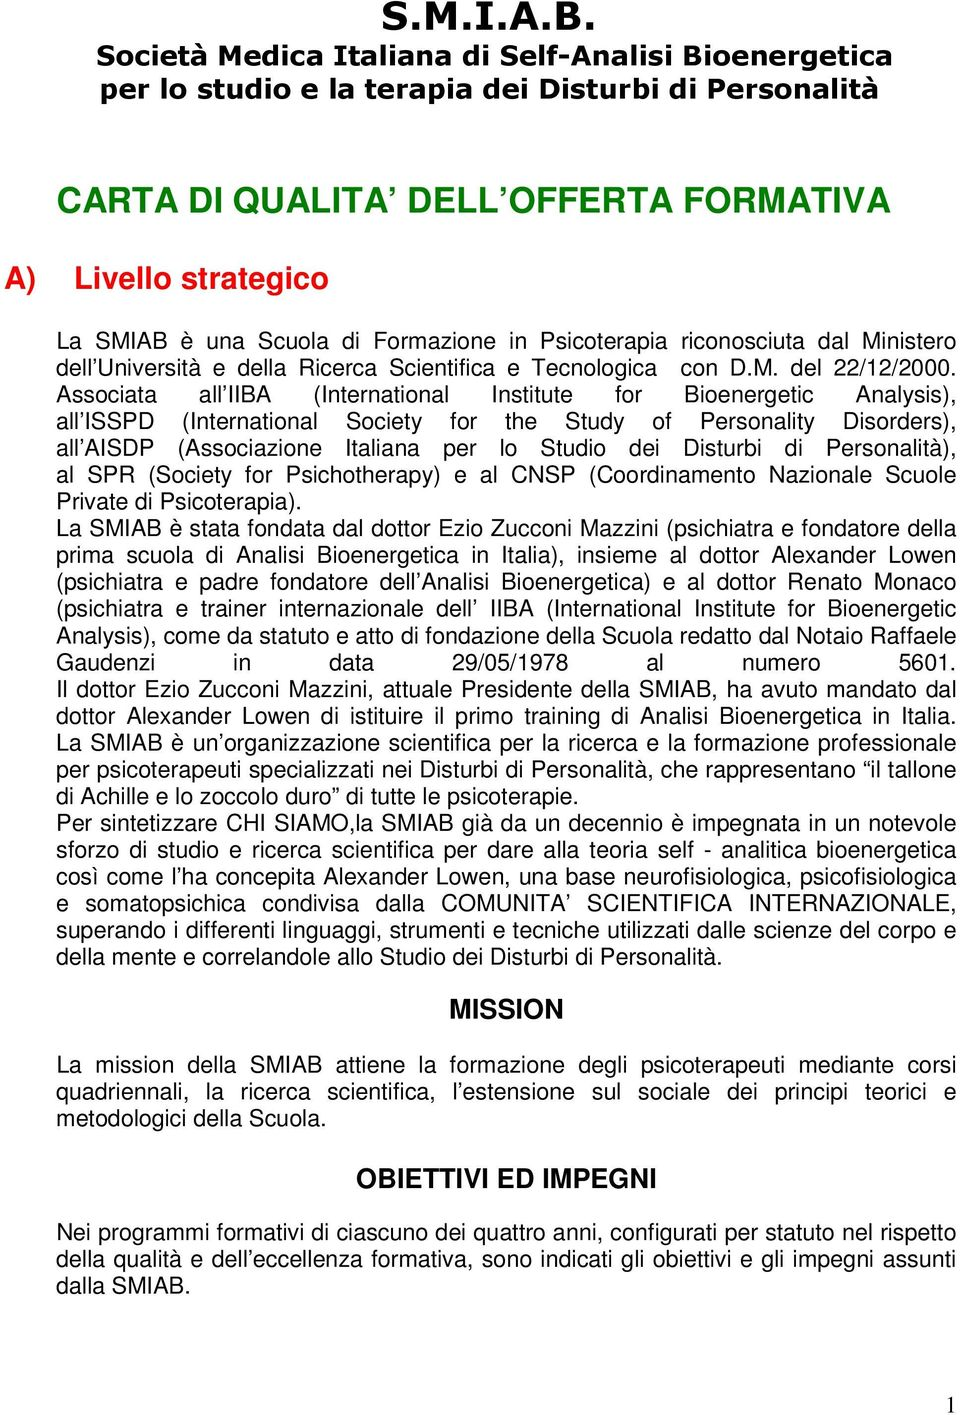 Associata all IIBA (International Institute for Bioenergetic Analysis), all ISSPD (International Society for the Study of Personality Disorders), all AISDP (Associazione Italiana per lo Studio dei